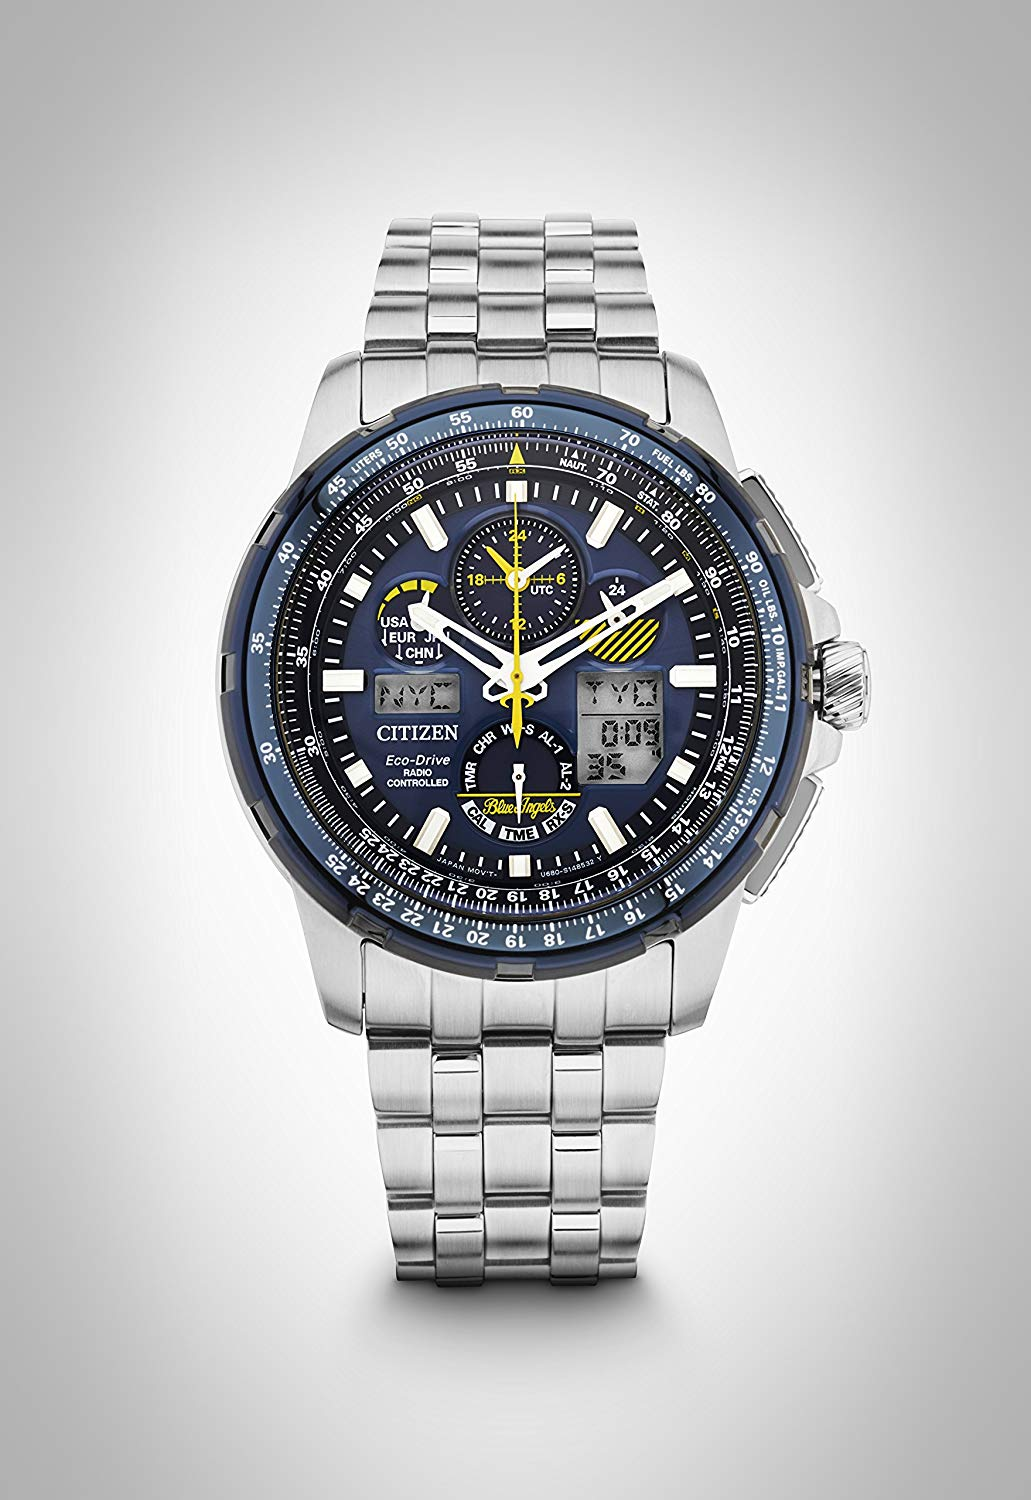 Citizen Men's Analogue Solar Powered Watch with Stainless Steel Strap JY8058-50L